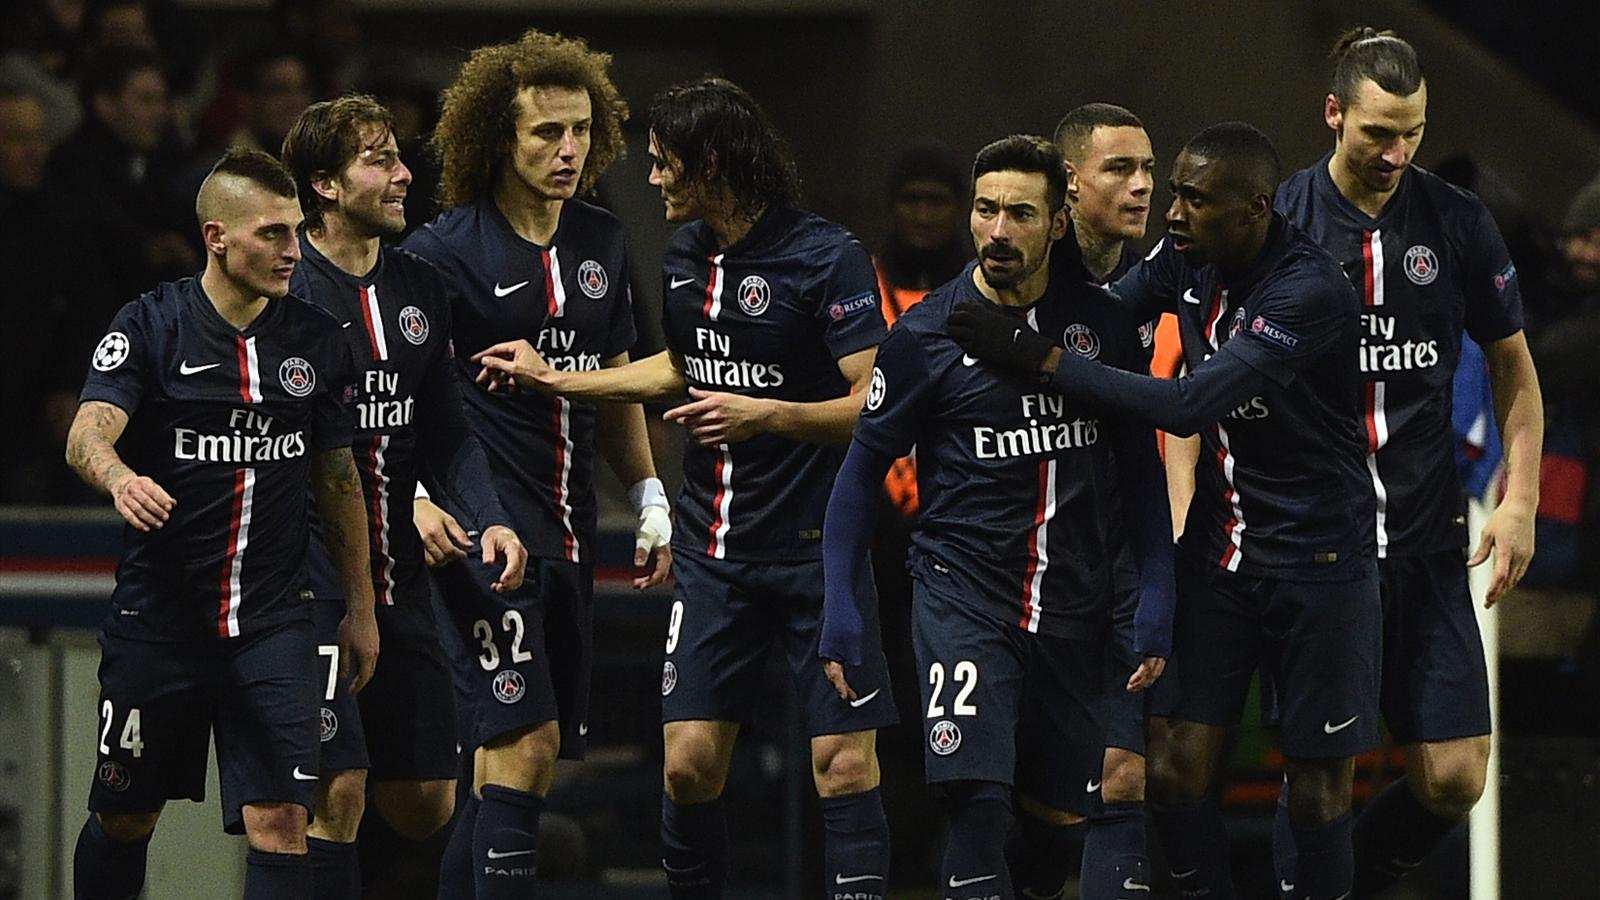 PSG: PSG Must Show Renewed Purpose To Unravel Chelsea